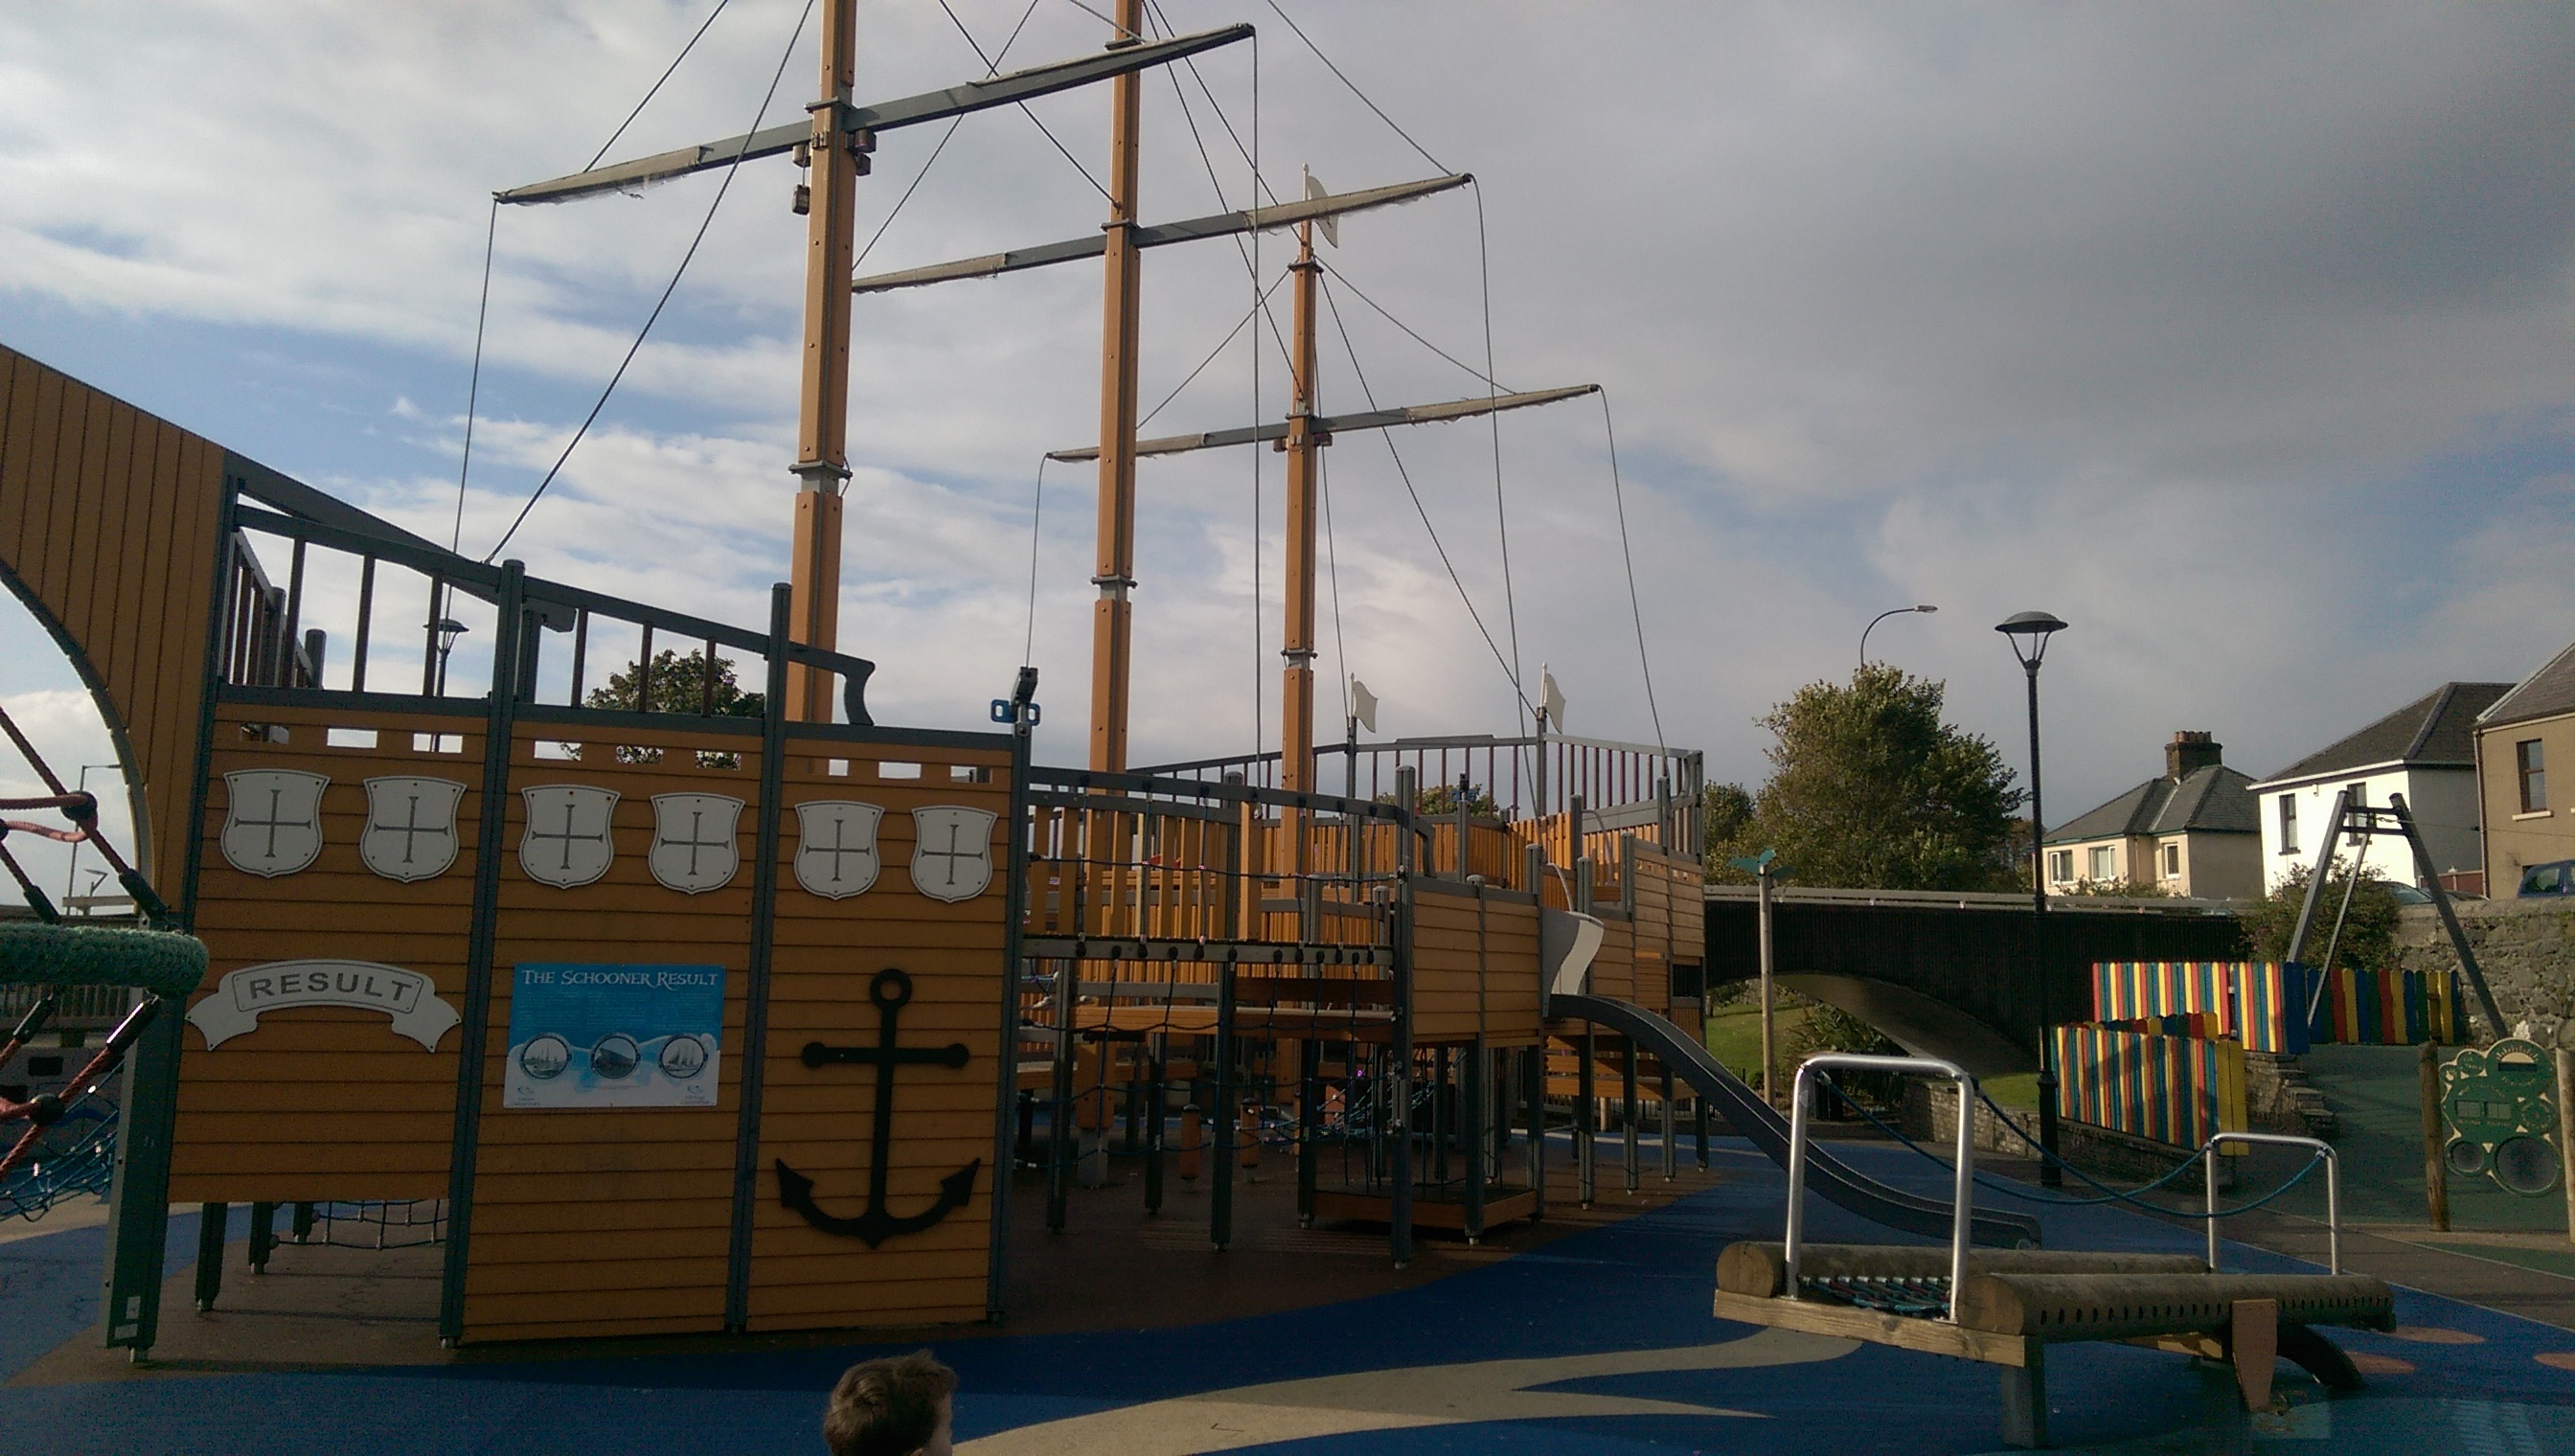 Huge Pirate Ship at Marine gardens play park, Carrickfergus